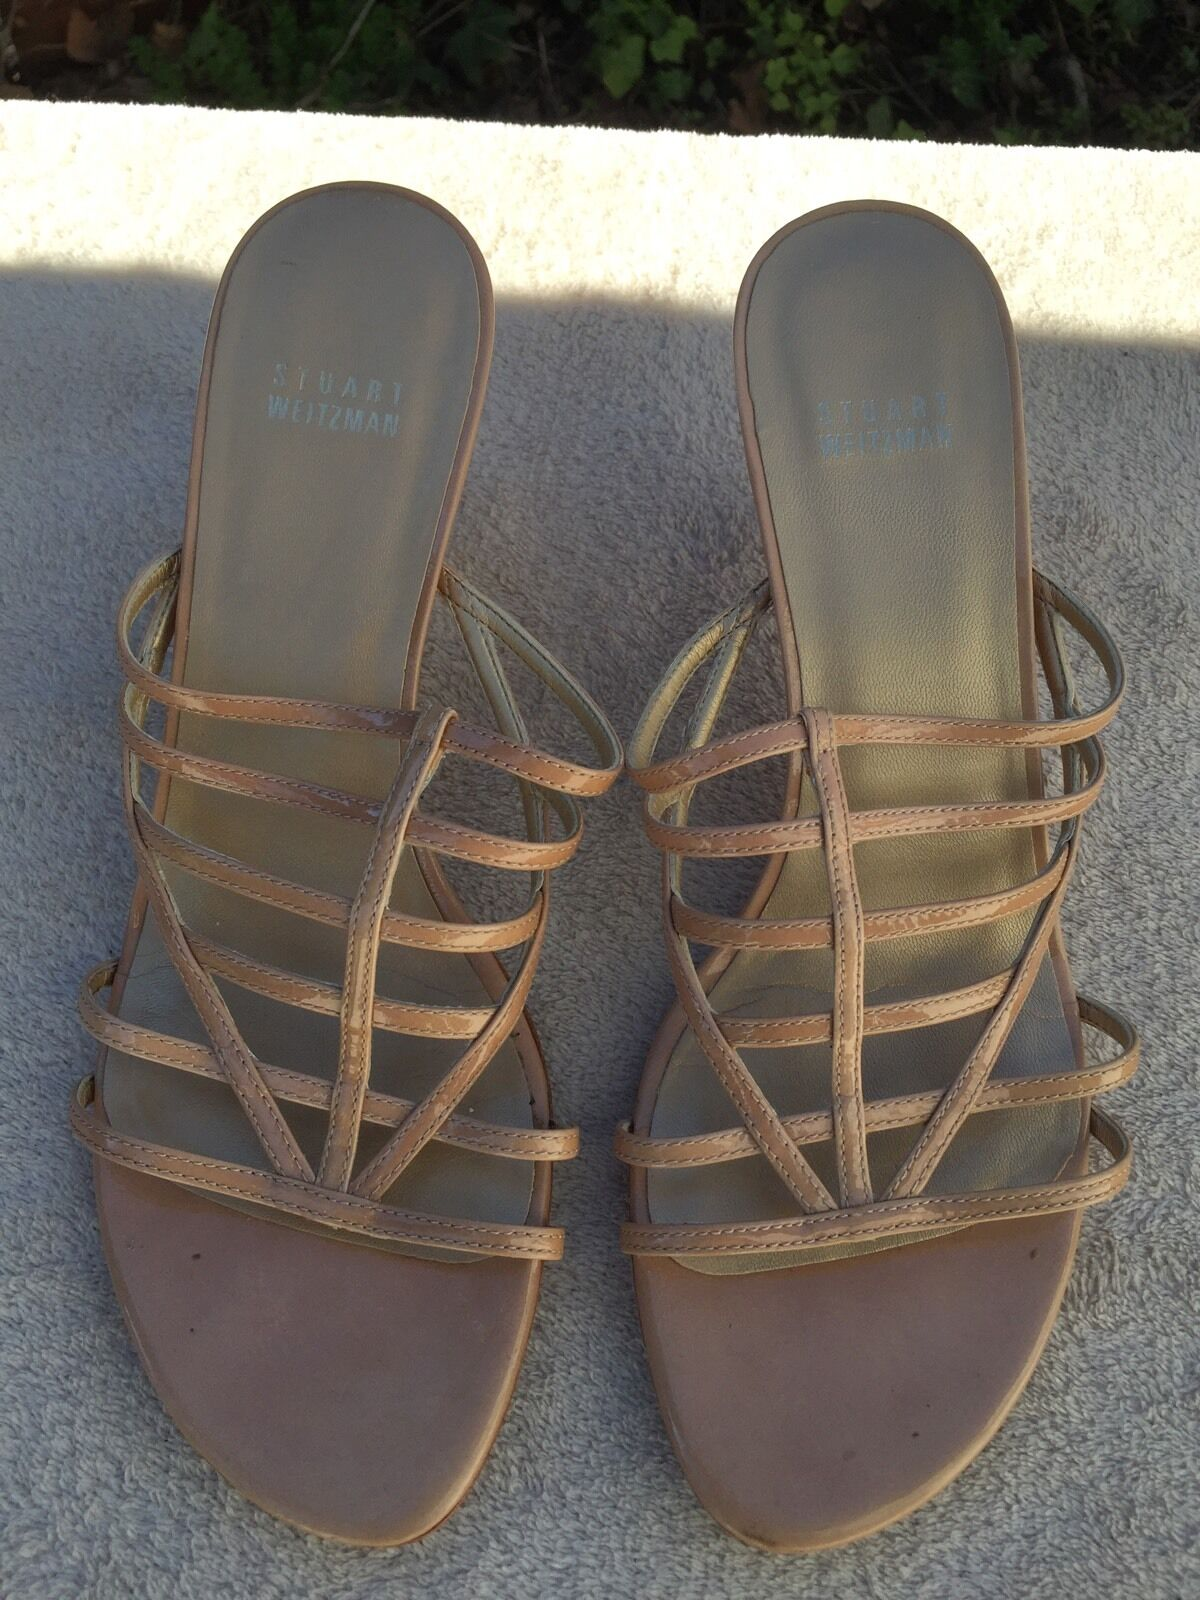 in vendita scontato del 70% STUART WEITZMAN Medium Heel Sandals Beige Beige Beige Leather 8 1 2  negozio online